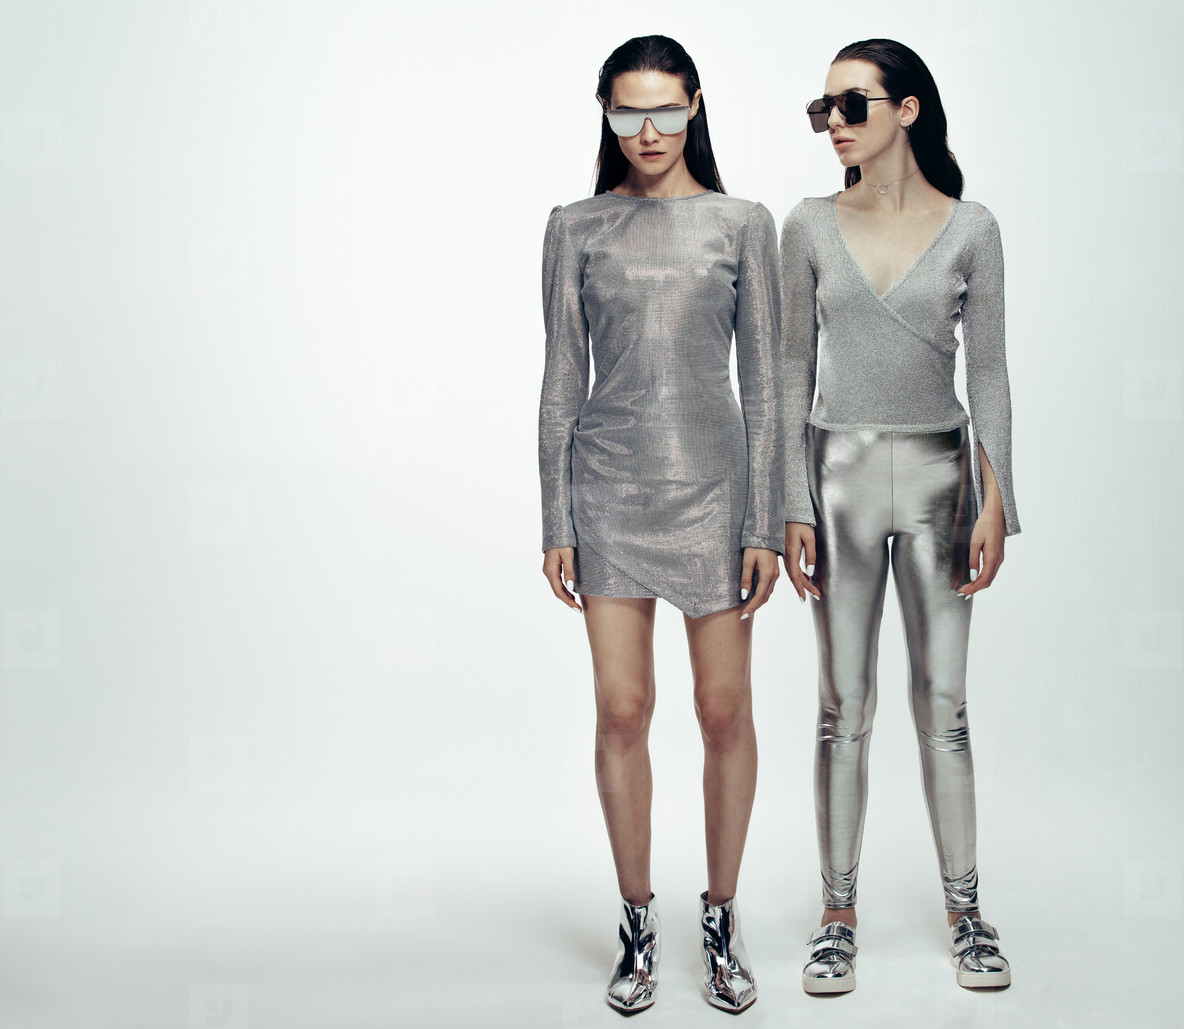 Female models in sliver and steel look